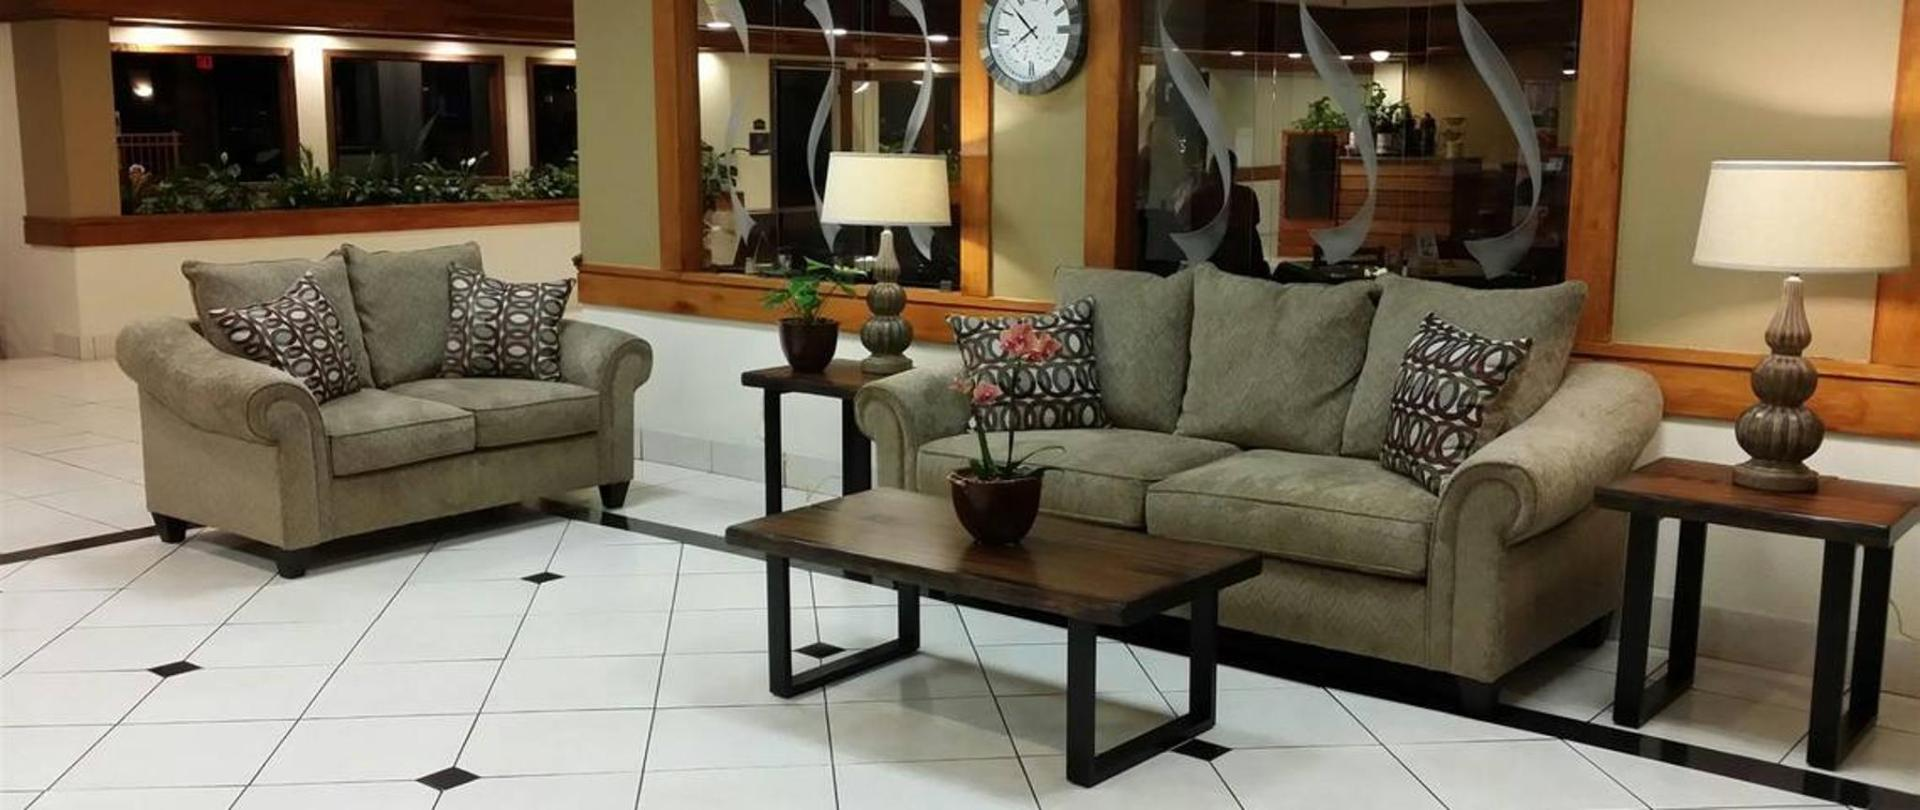 lobby-new.jpg.1140x481_default.jpg